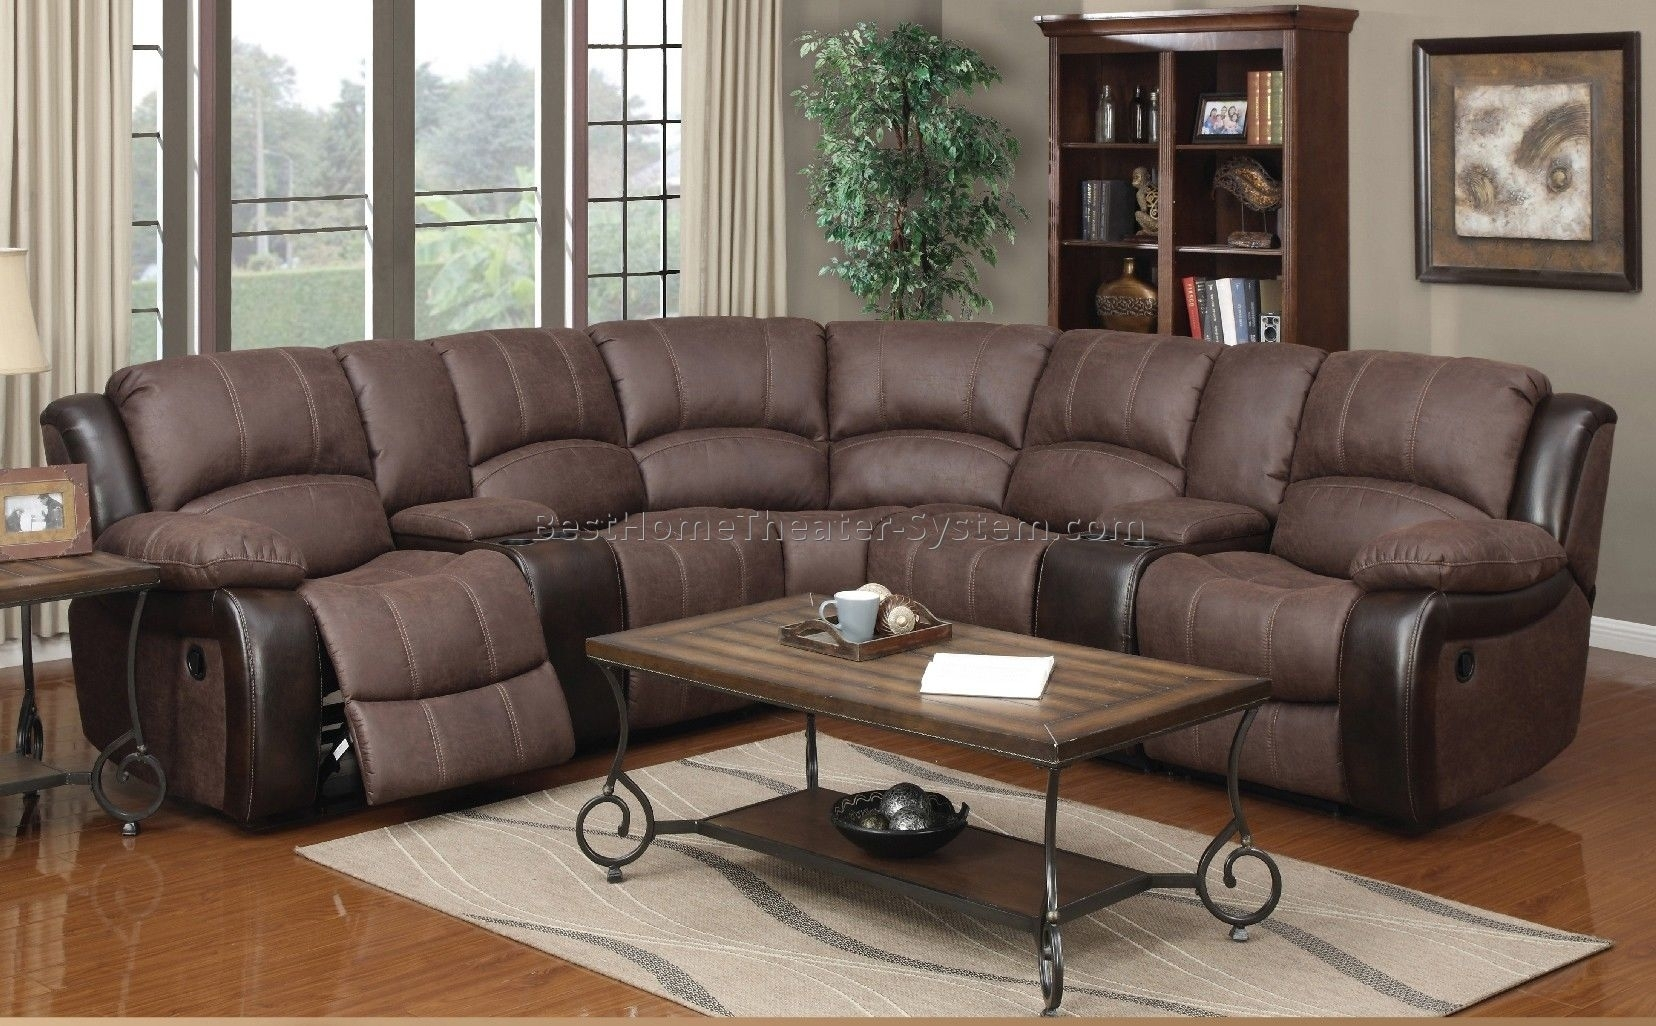 Awesome Sectional Sofas In Phoenix Az – Buildsimplehome Pertaining To Phoenix Arizona Sectional Sofas (View 4 of 10)